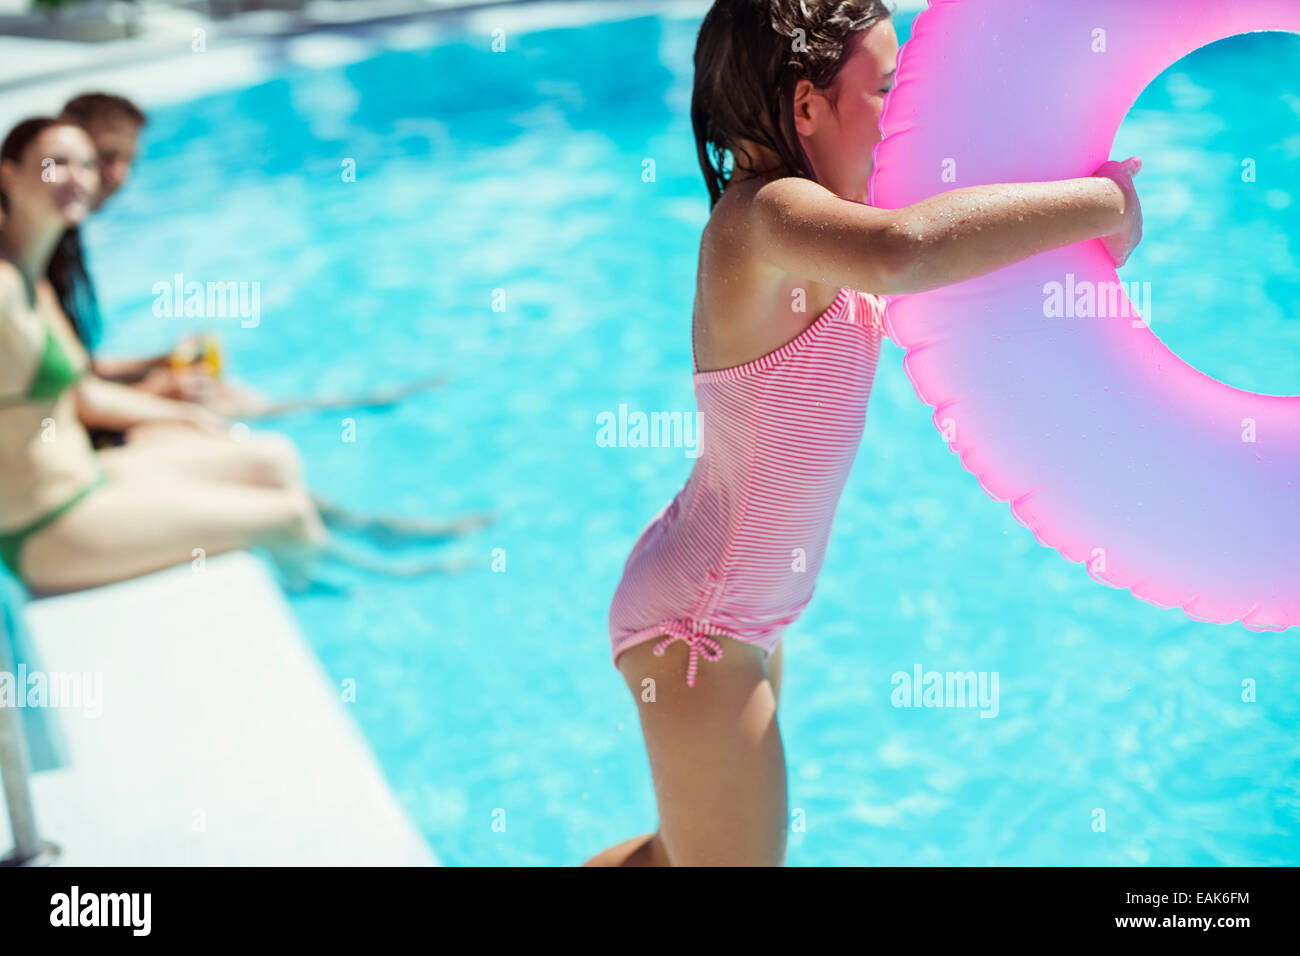 Girl with pink inflatable ring jumping into swimming pool - Stock Image